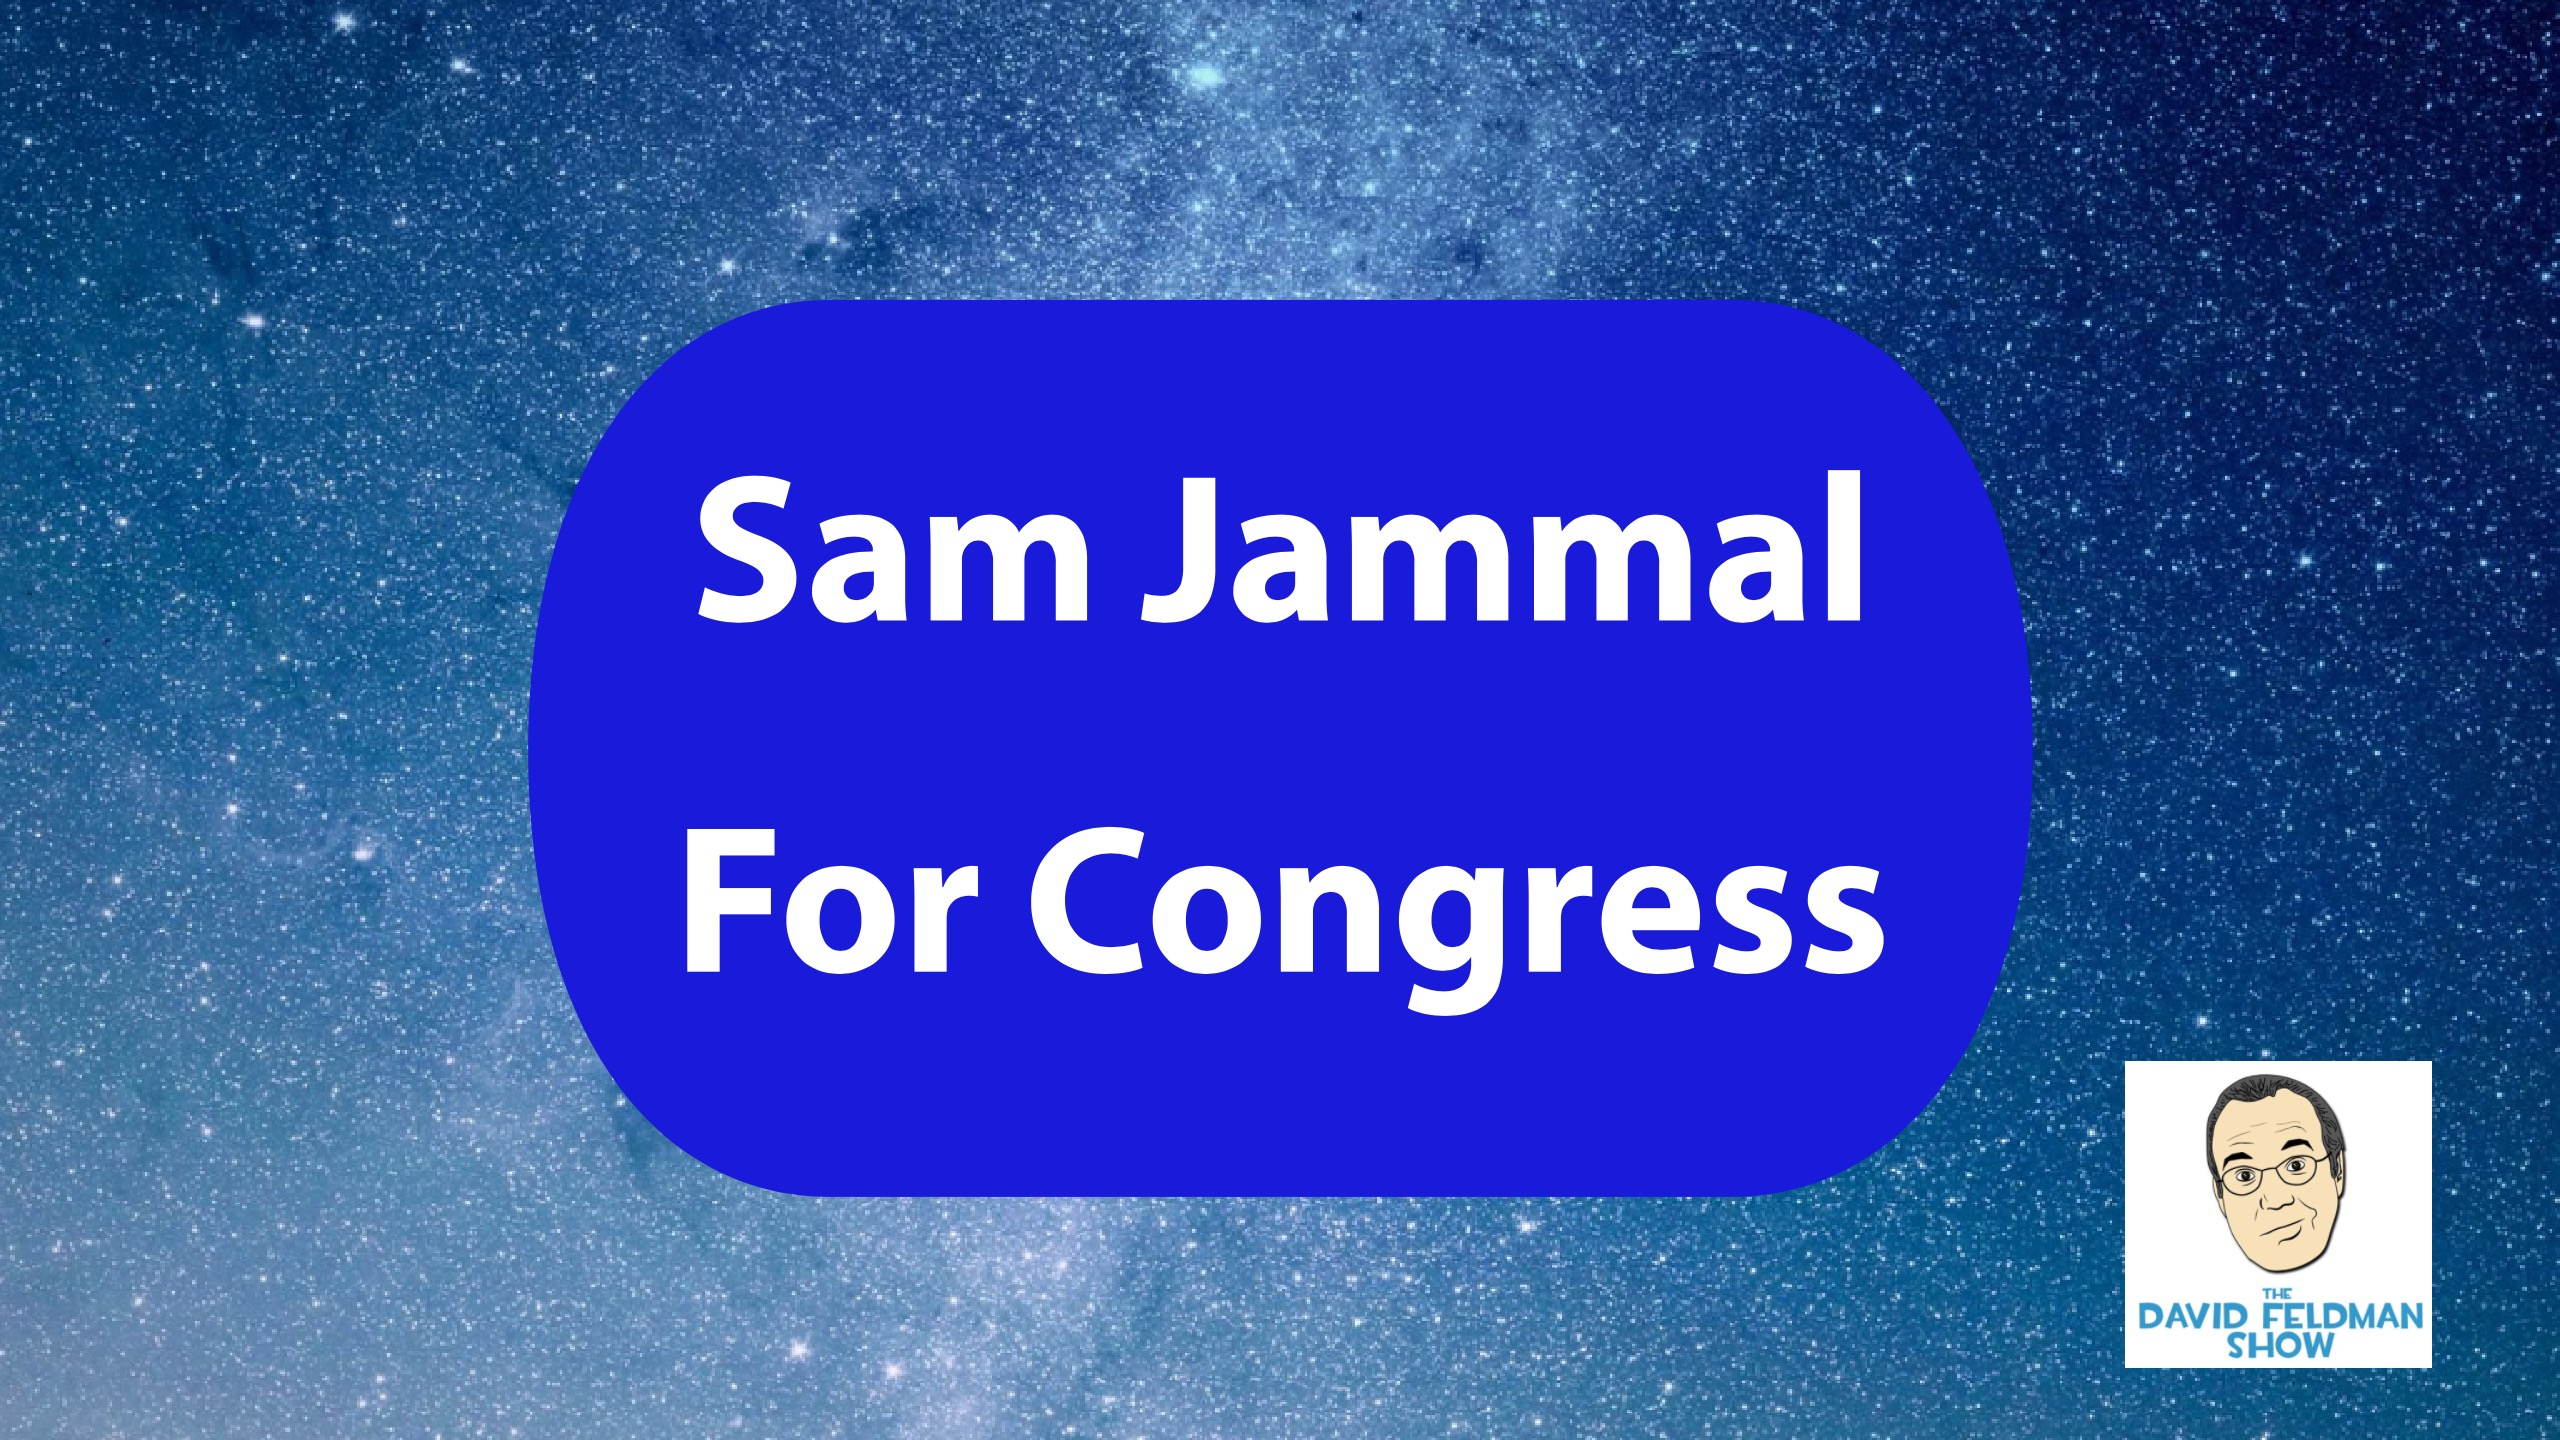 Sam jammal for congress